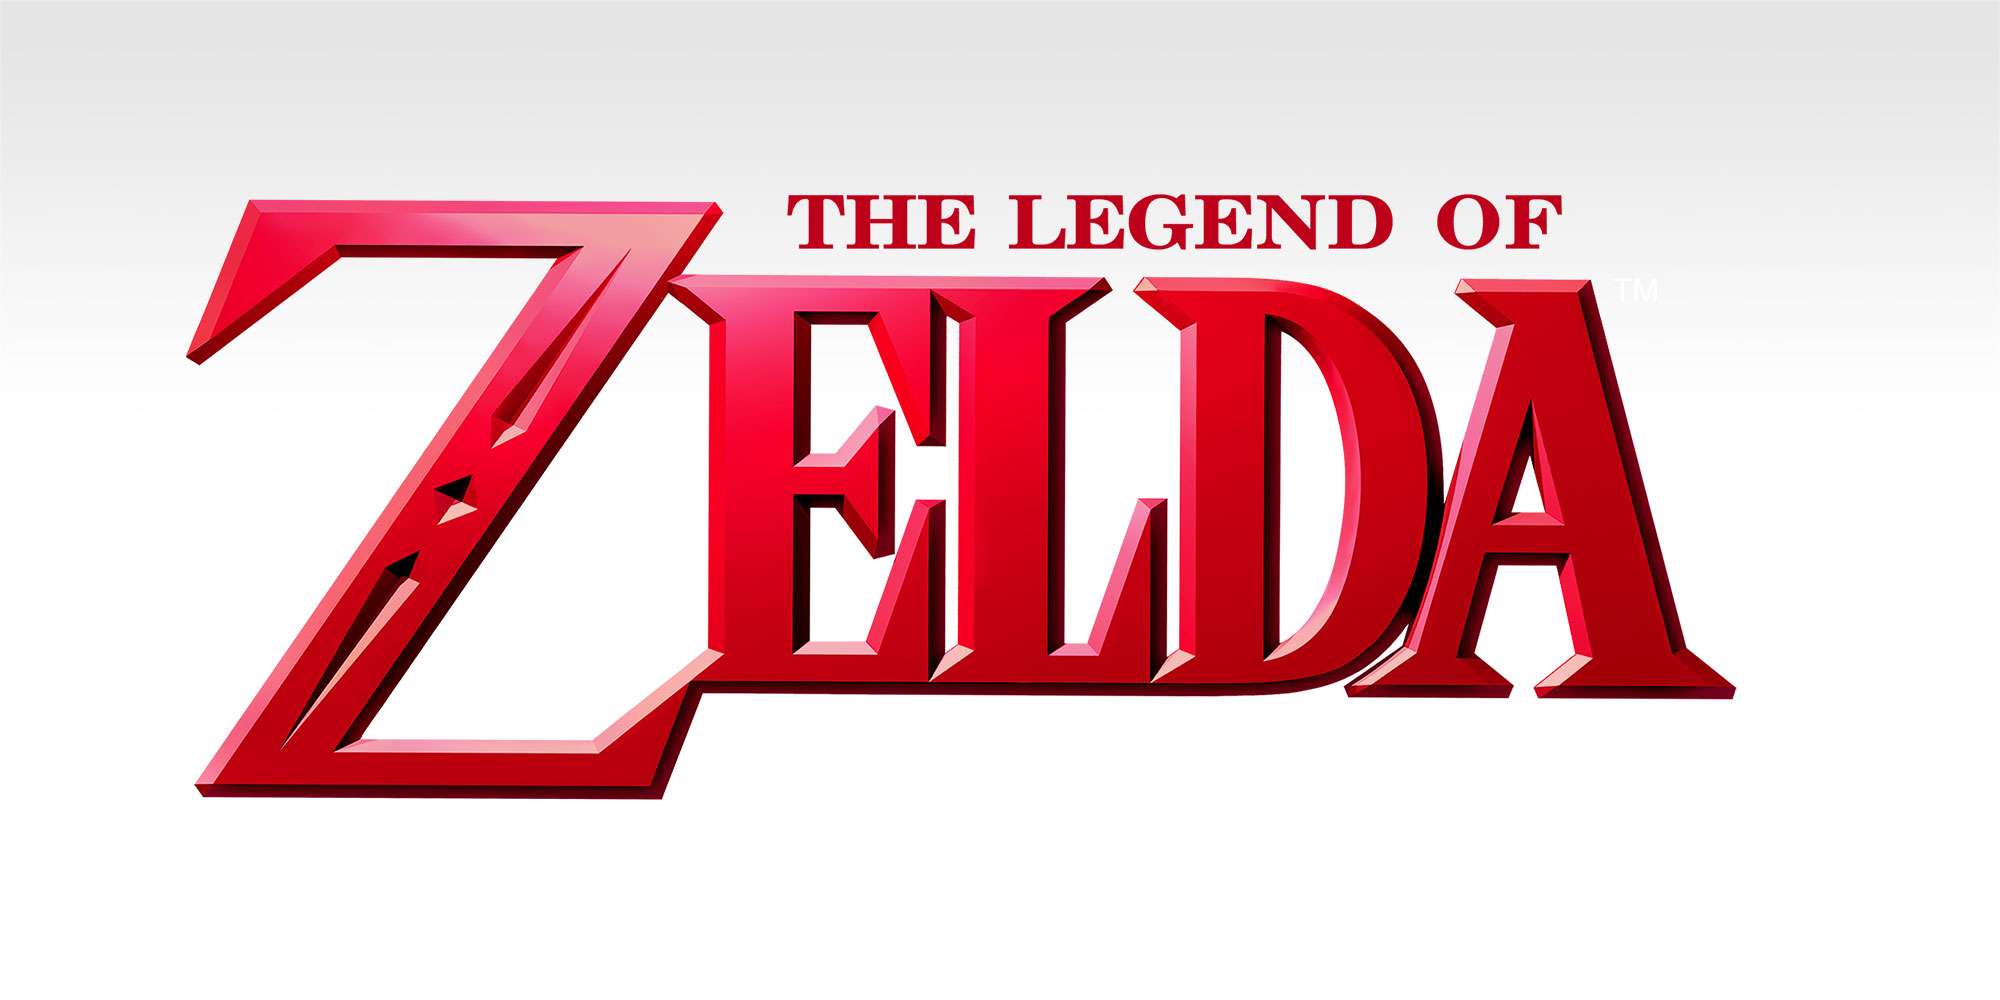 Dai un'occhiata ai dietro le quinte di The Legend of Zelda con dei documenti originali!